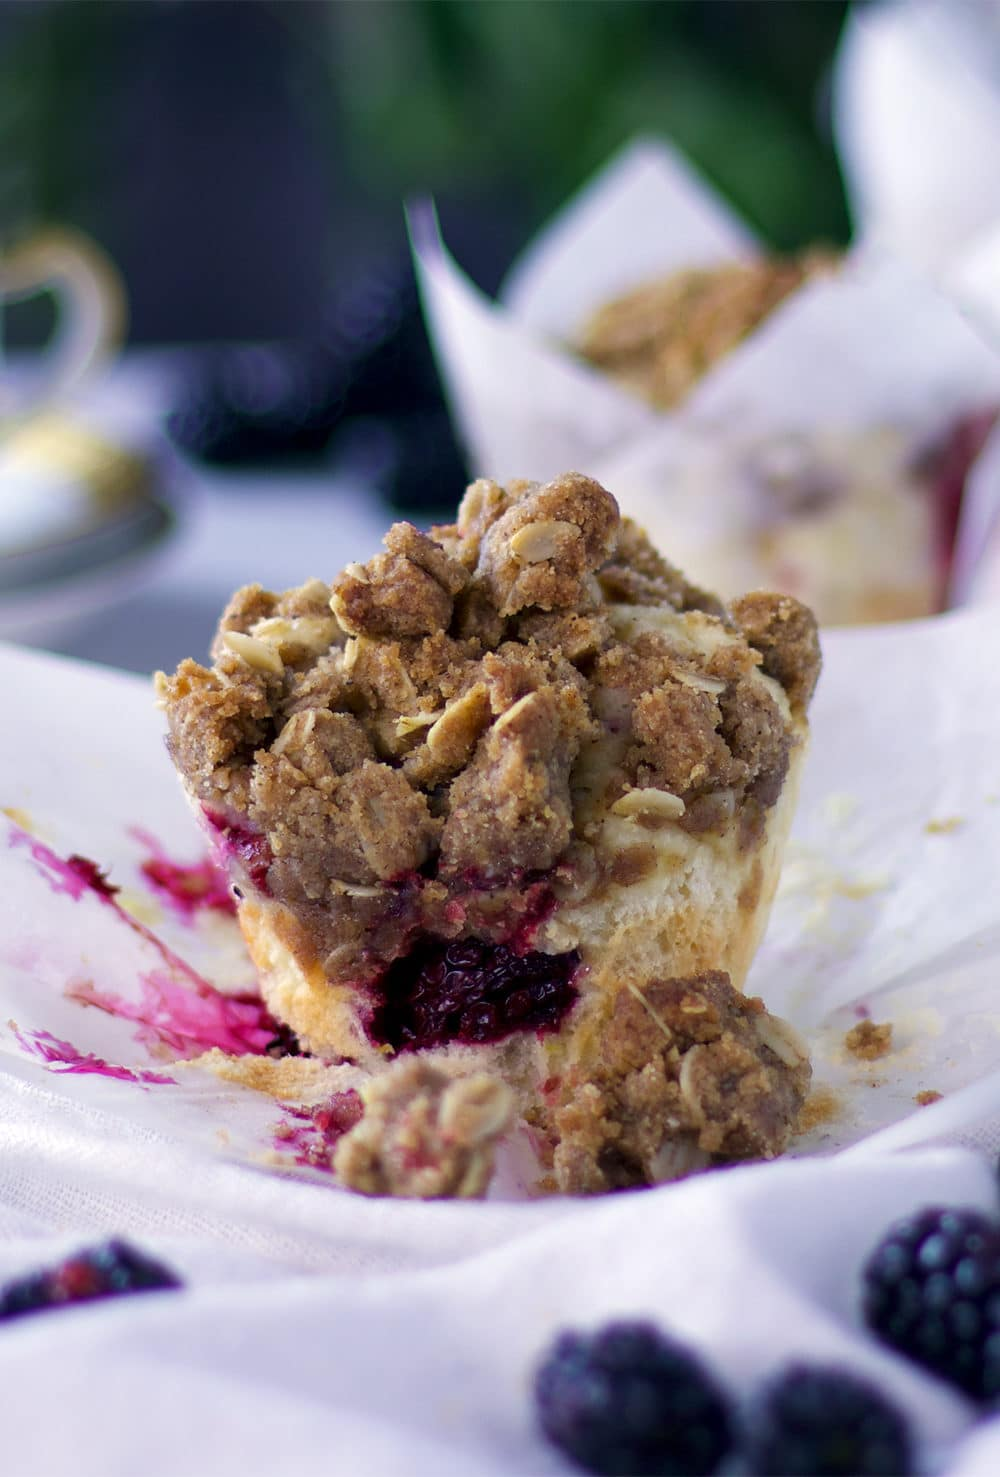 Mixed Berry Muffins with Brown Sugar Streusel